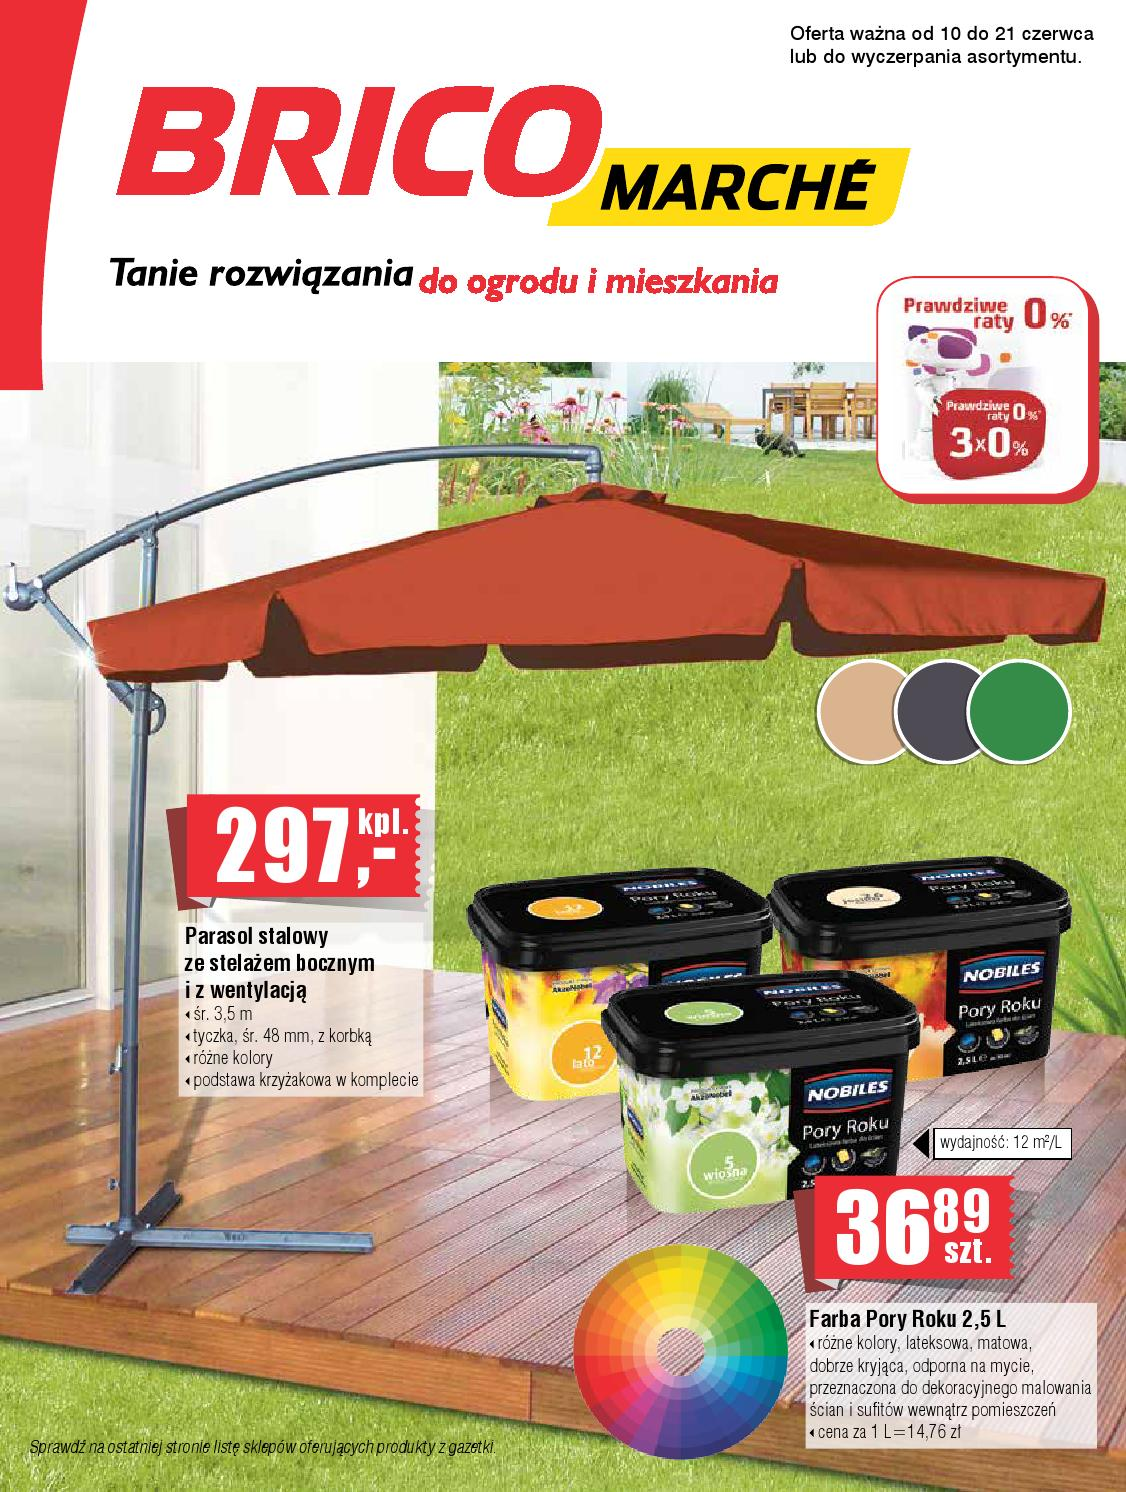 Bricomarche do 21.06.2015 by iUlotka.pl   issuu